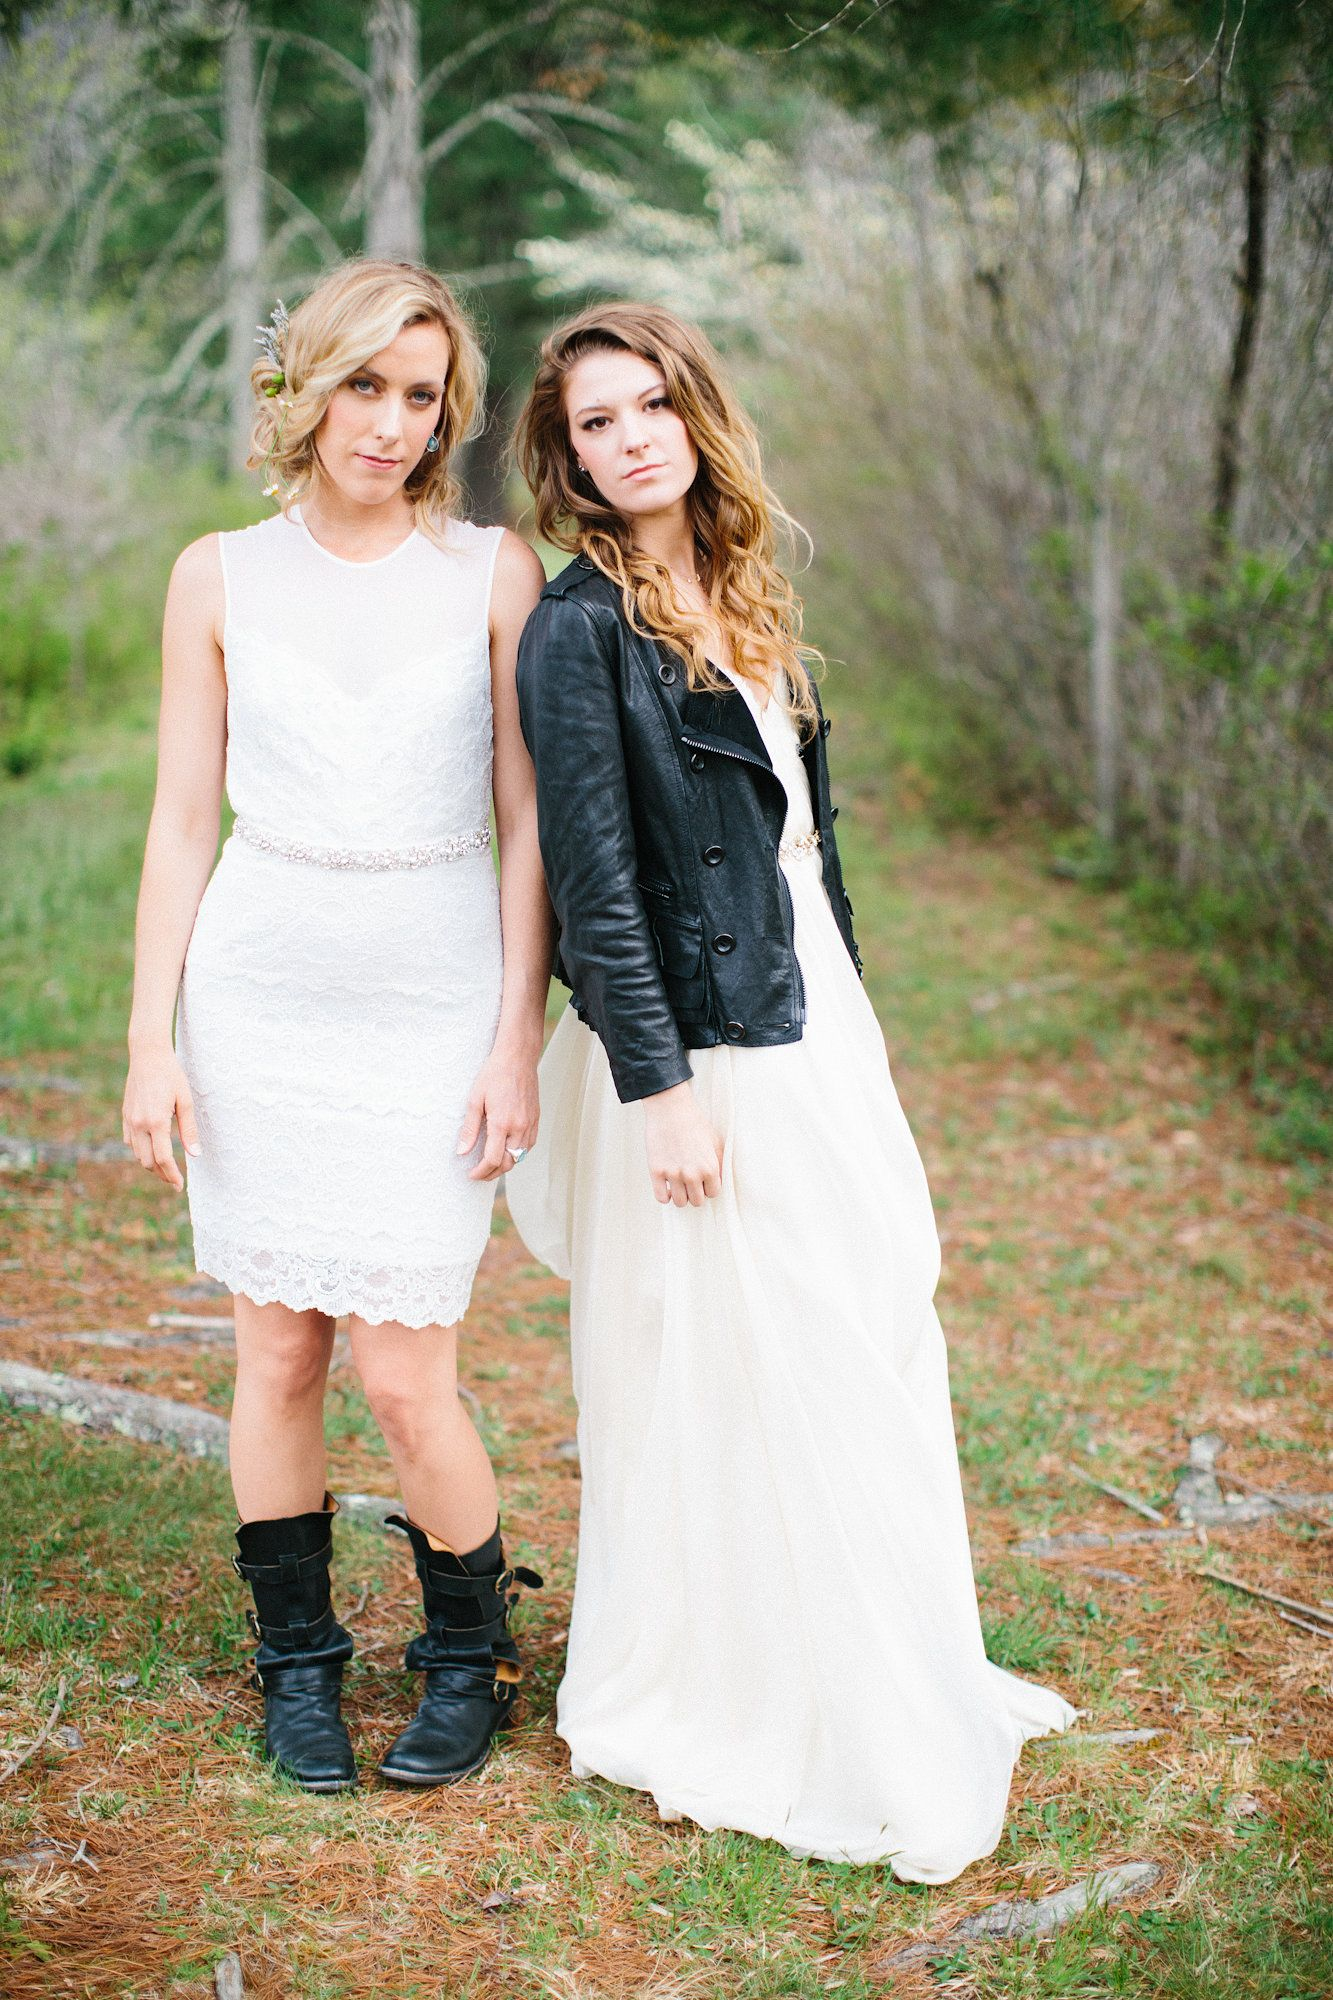 Boho bridal party rock and roll bridal party touches of leather